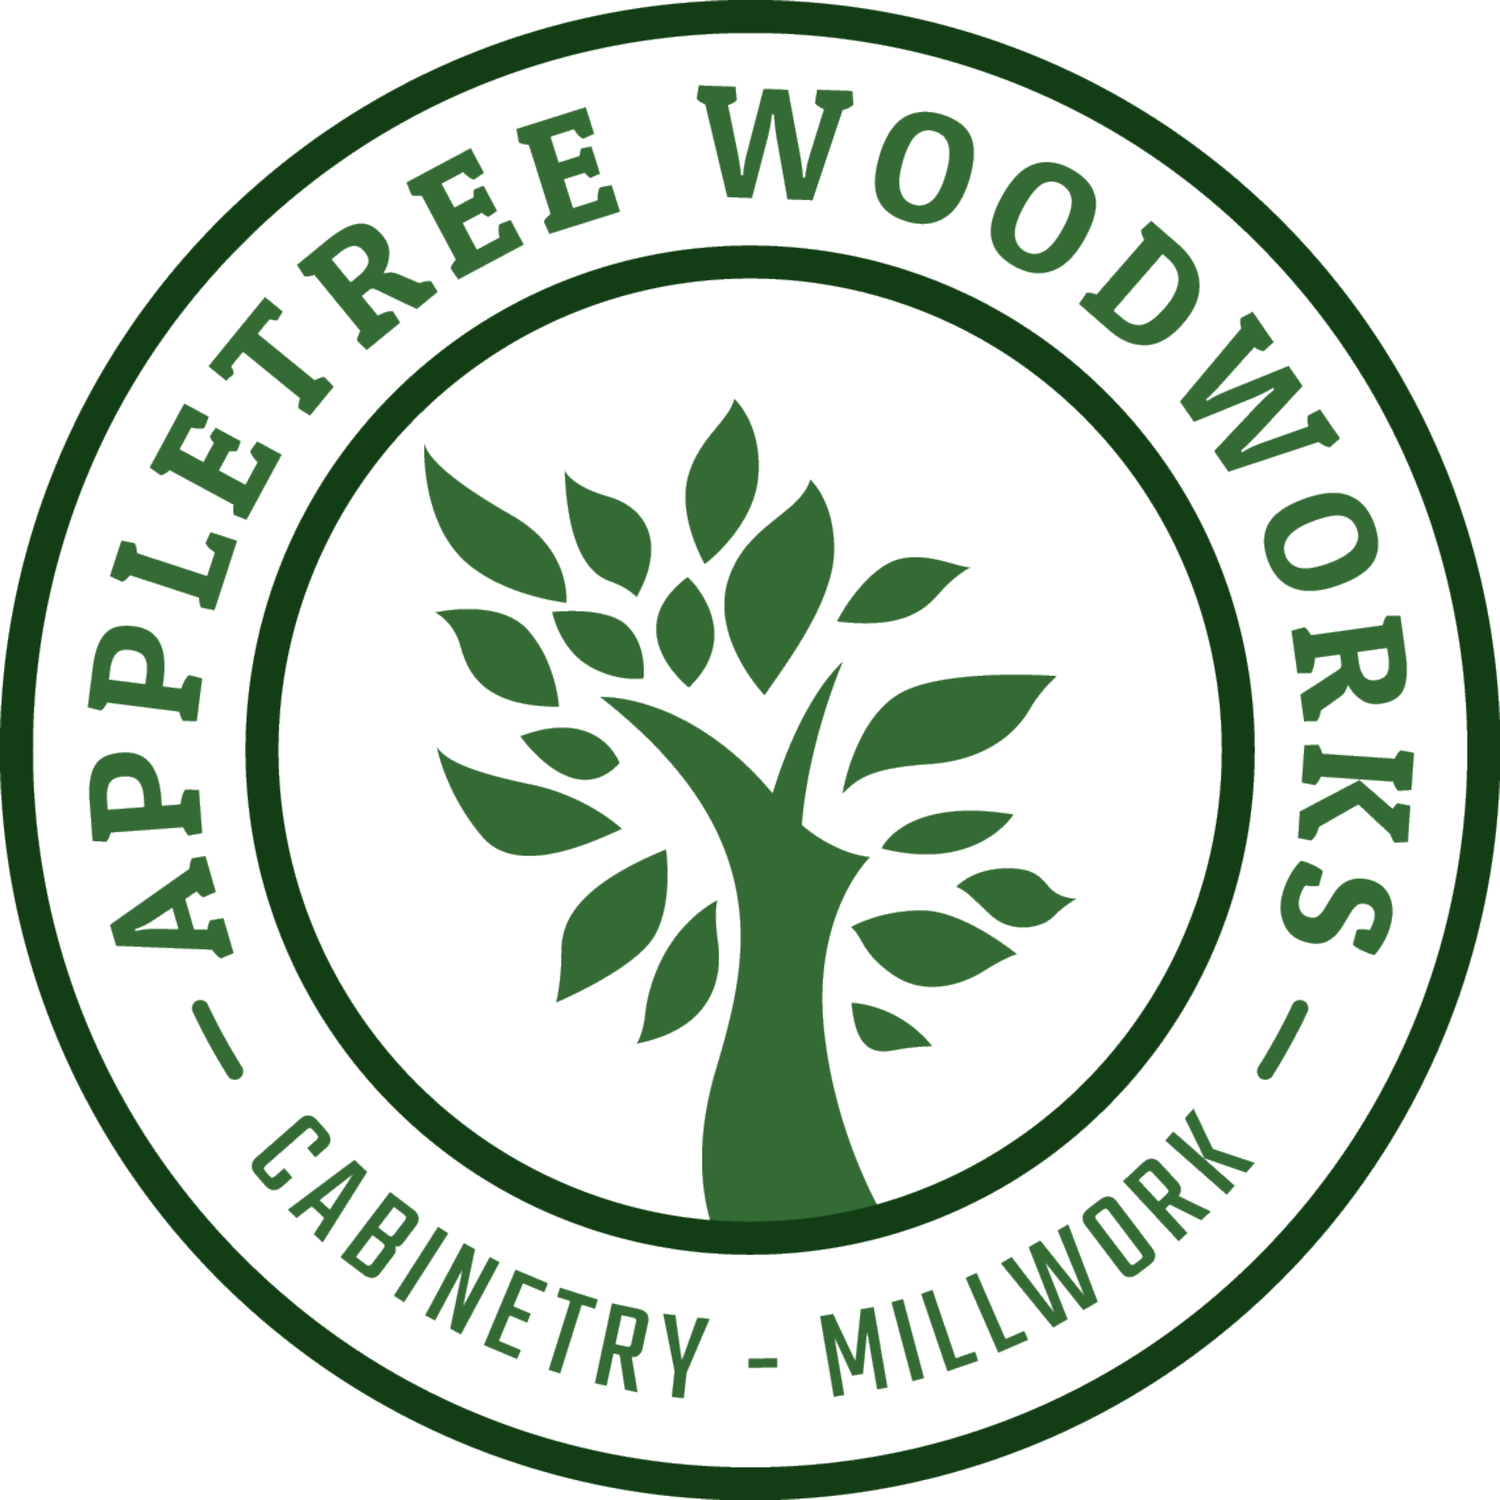 Appletree Woodworks